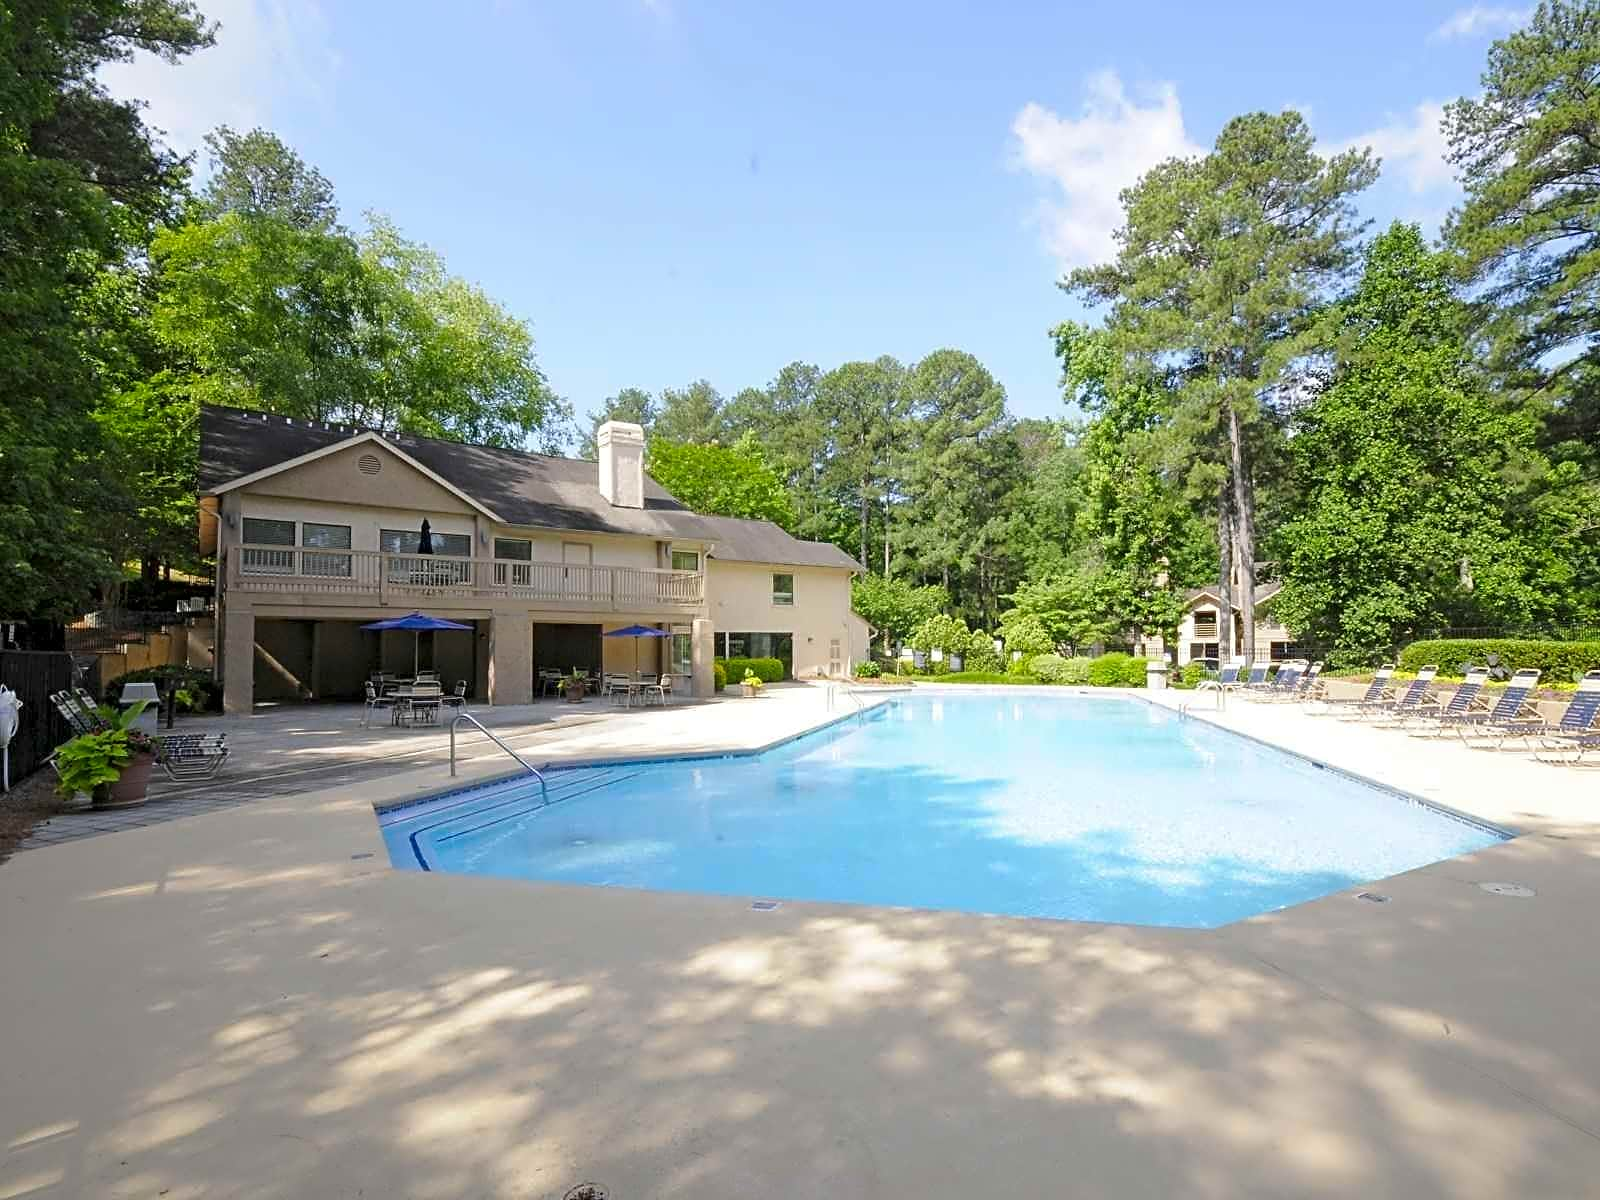 Awesome Sandy Springs Ga Houses For Rent Apartments Page 3